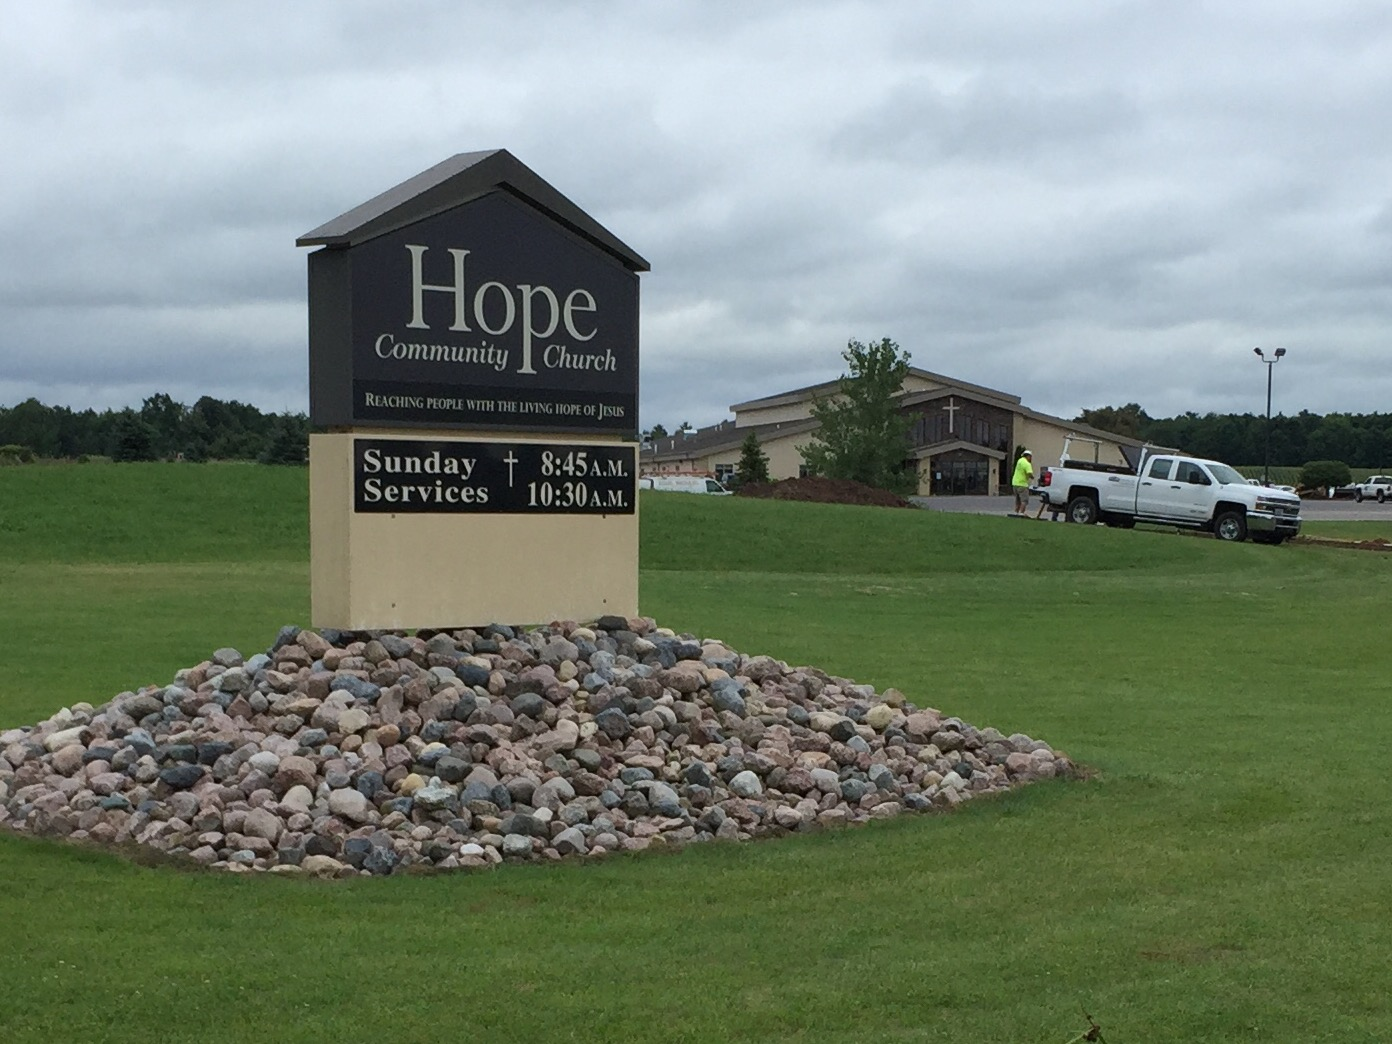 Hope Community Church east of Shawano, August 11, 2017 (WLUK/Eric Peterson)